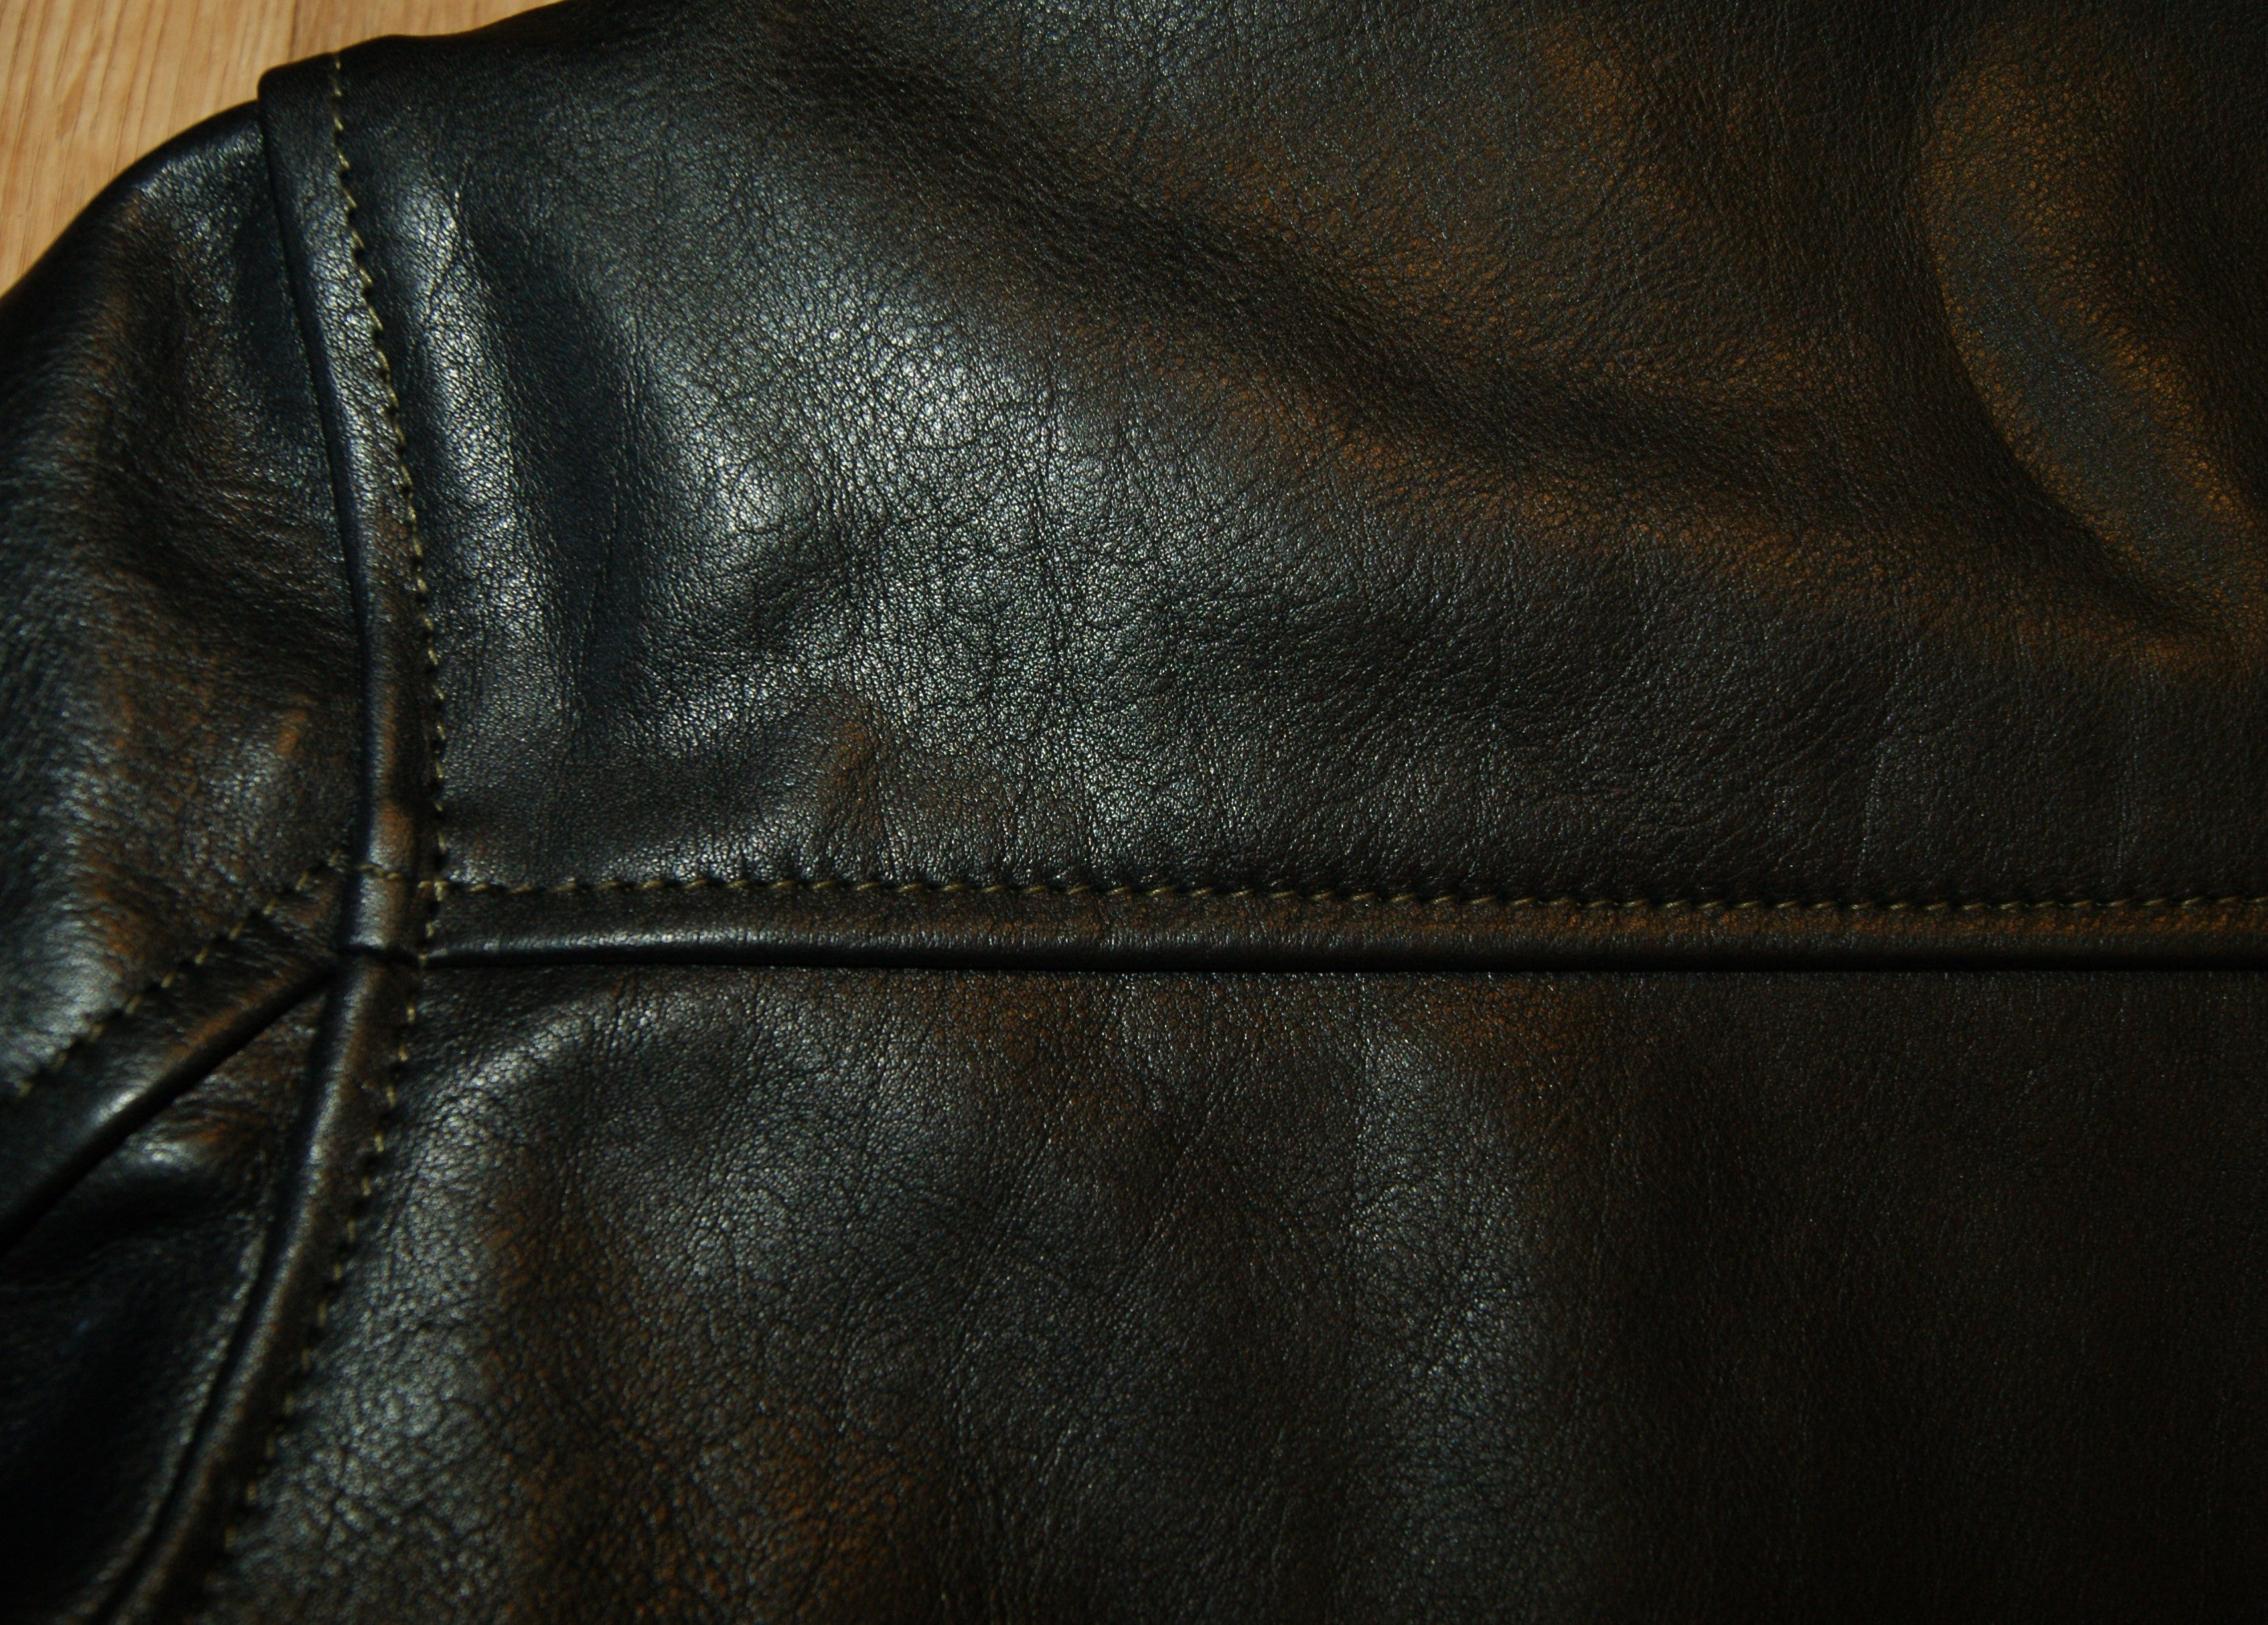 Aero Board Racer, size 38, Black Vicenza Horsehide